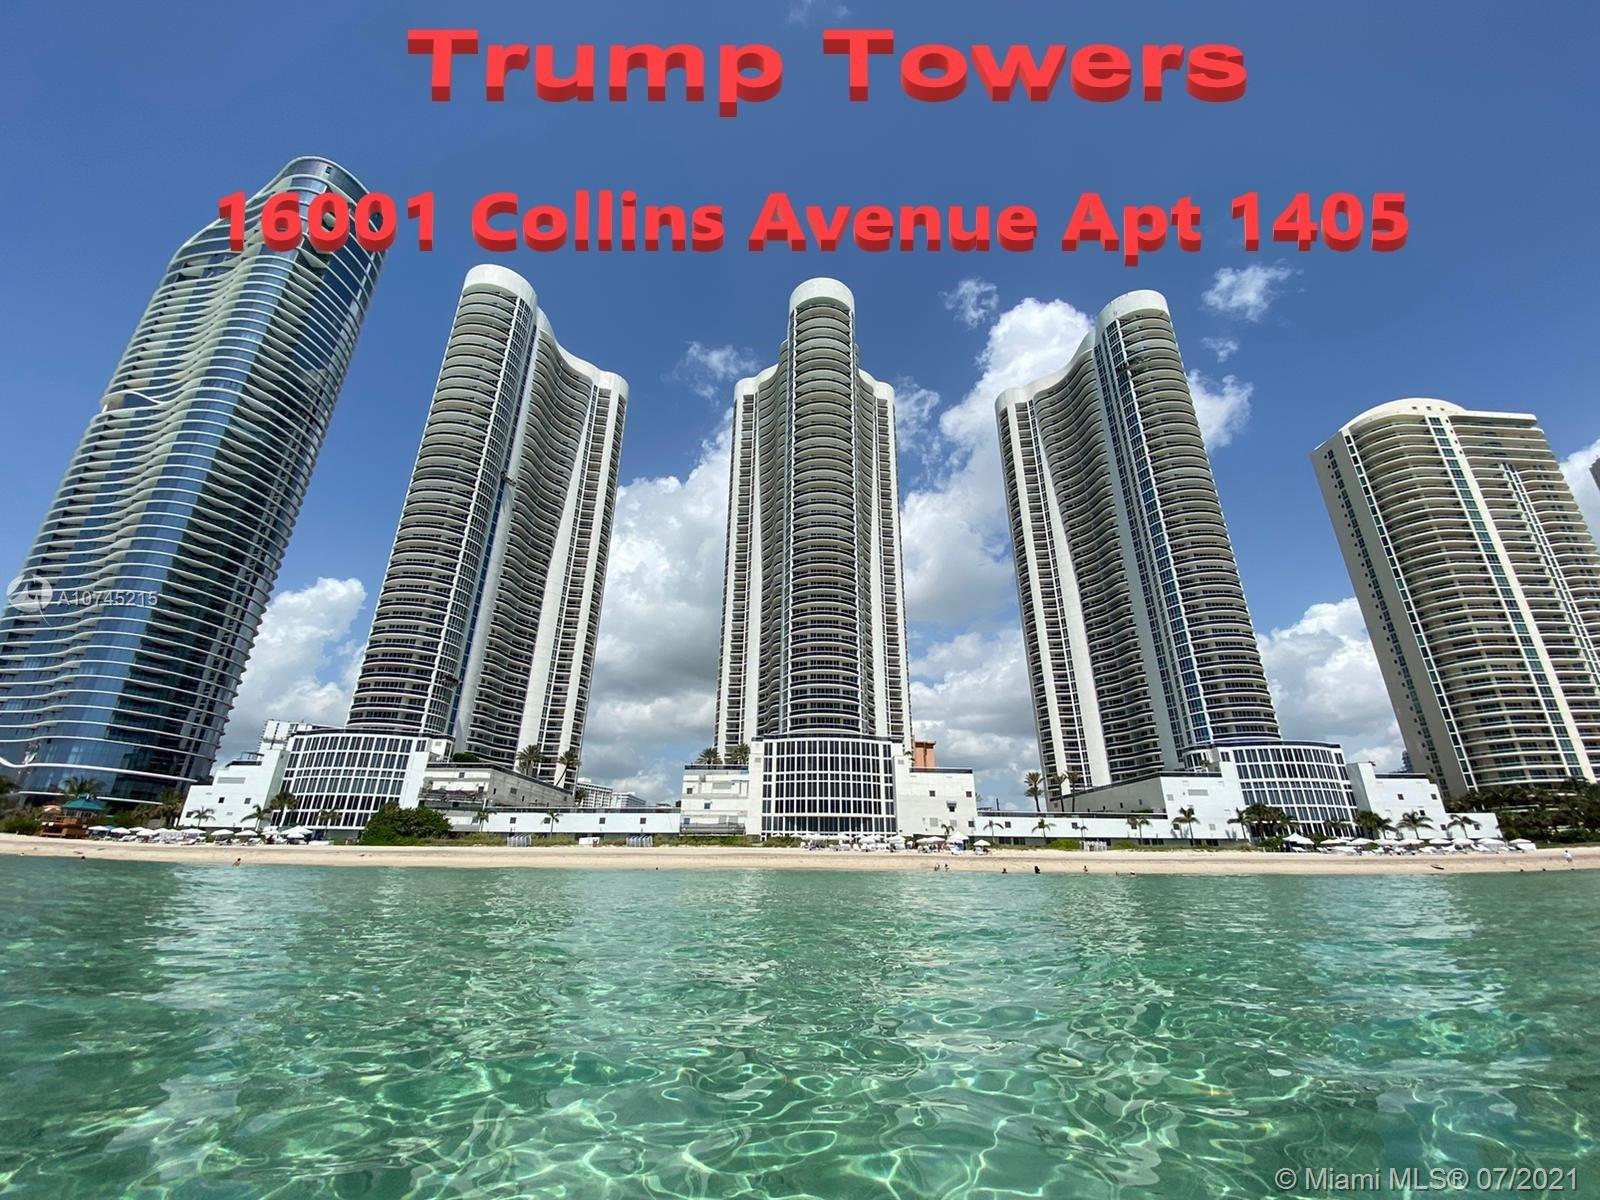 """Tenant occupied from NOV 16, 2020 to NOV 15, 2021 ($3,500/month). This is the best line 5 available at Trump Towers... 10"""" Ceilings unit with breathtaking intracoastal views. Floor to ceiling windows, granite counter top, built-in coffee machine, Subzero & stainless steel appliances and Italian cabinetry. world-class amenities including Fitness center, swimming pool, spa, sauna, conference room, game room, 24/7 valet, etc..--> Click on virtual tour link to see Video"""